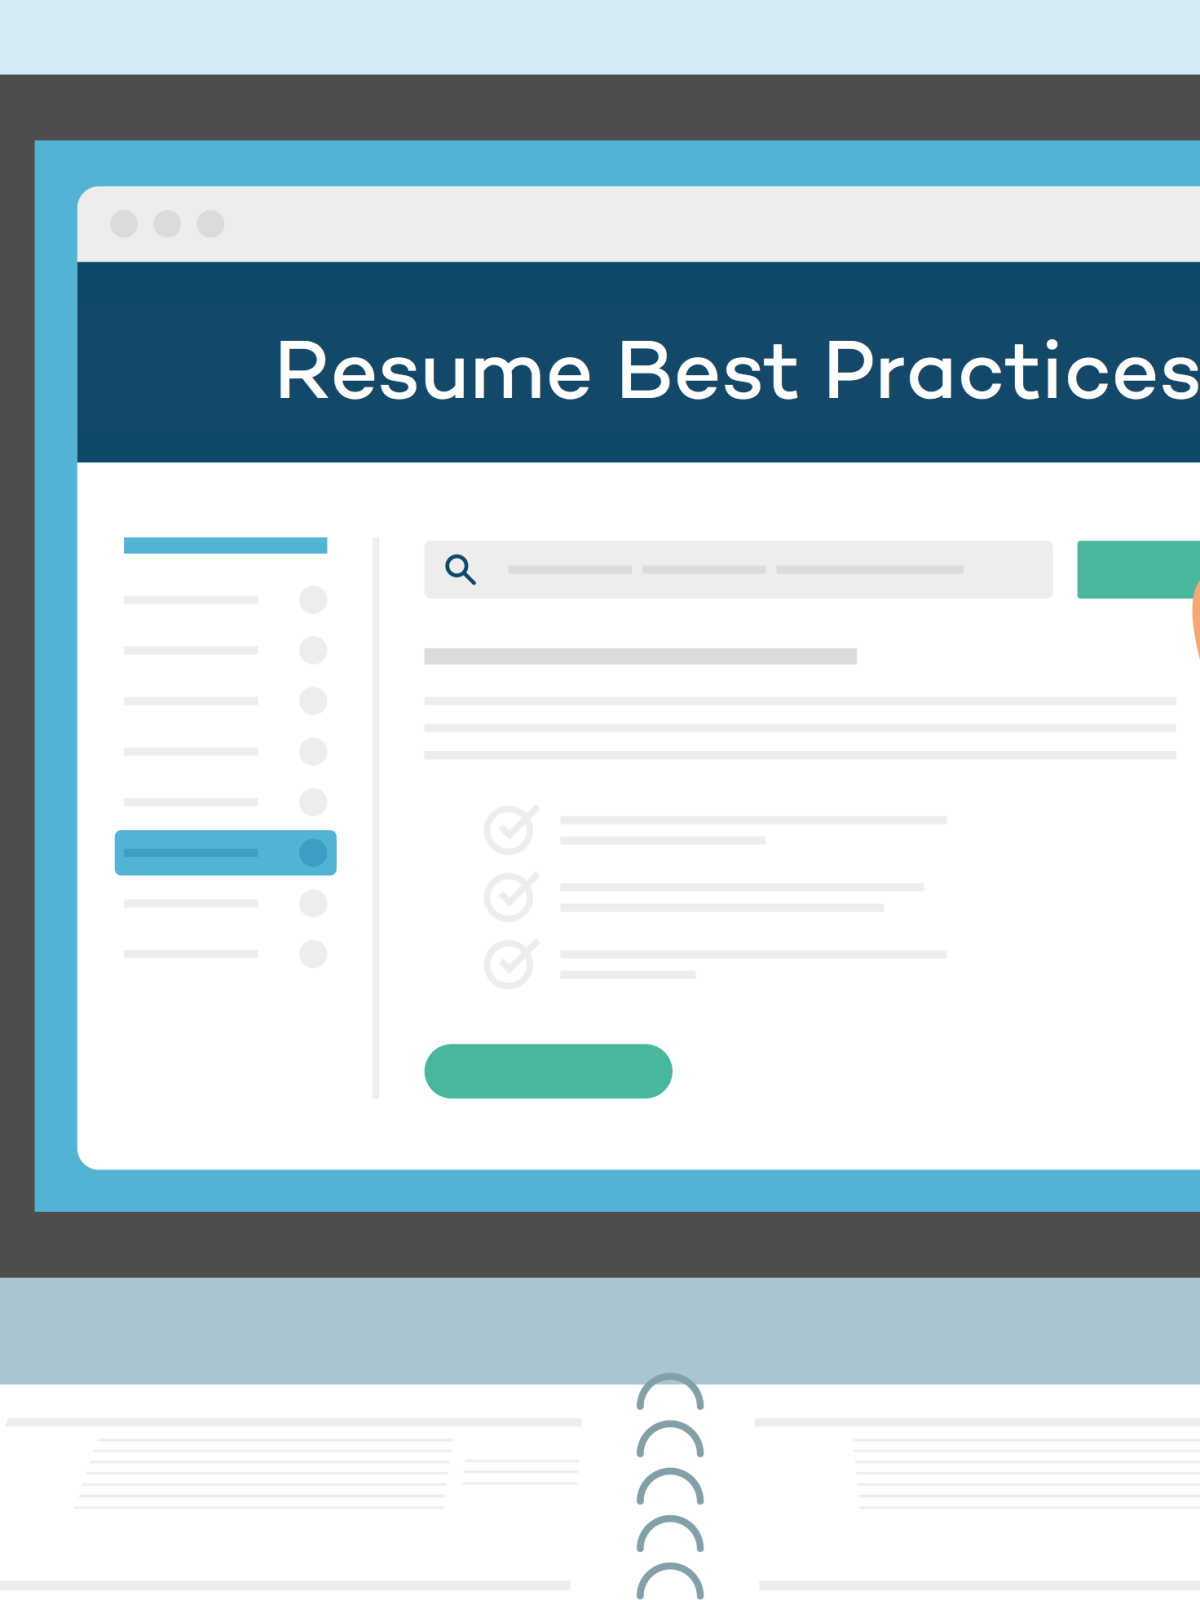 Nomad-Health-Doctor-Resume-Best-Practices